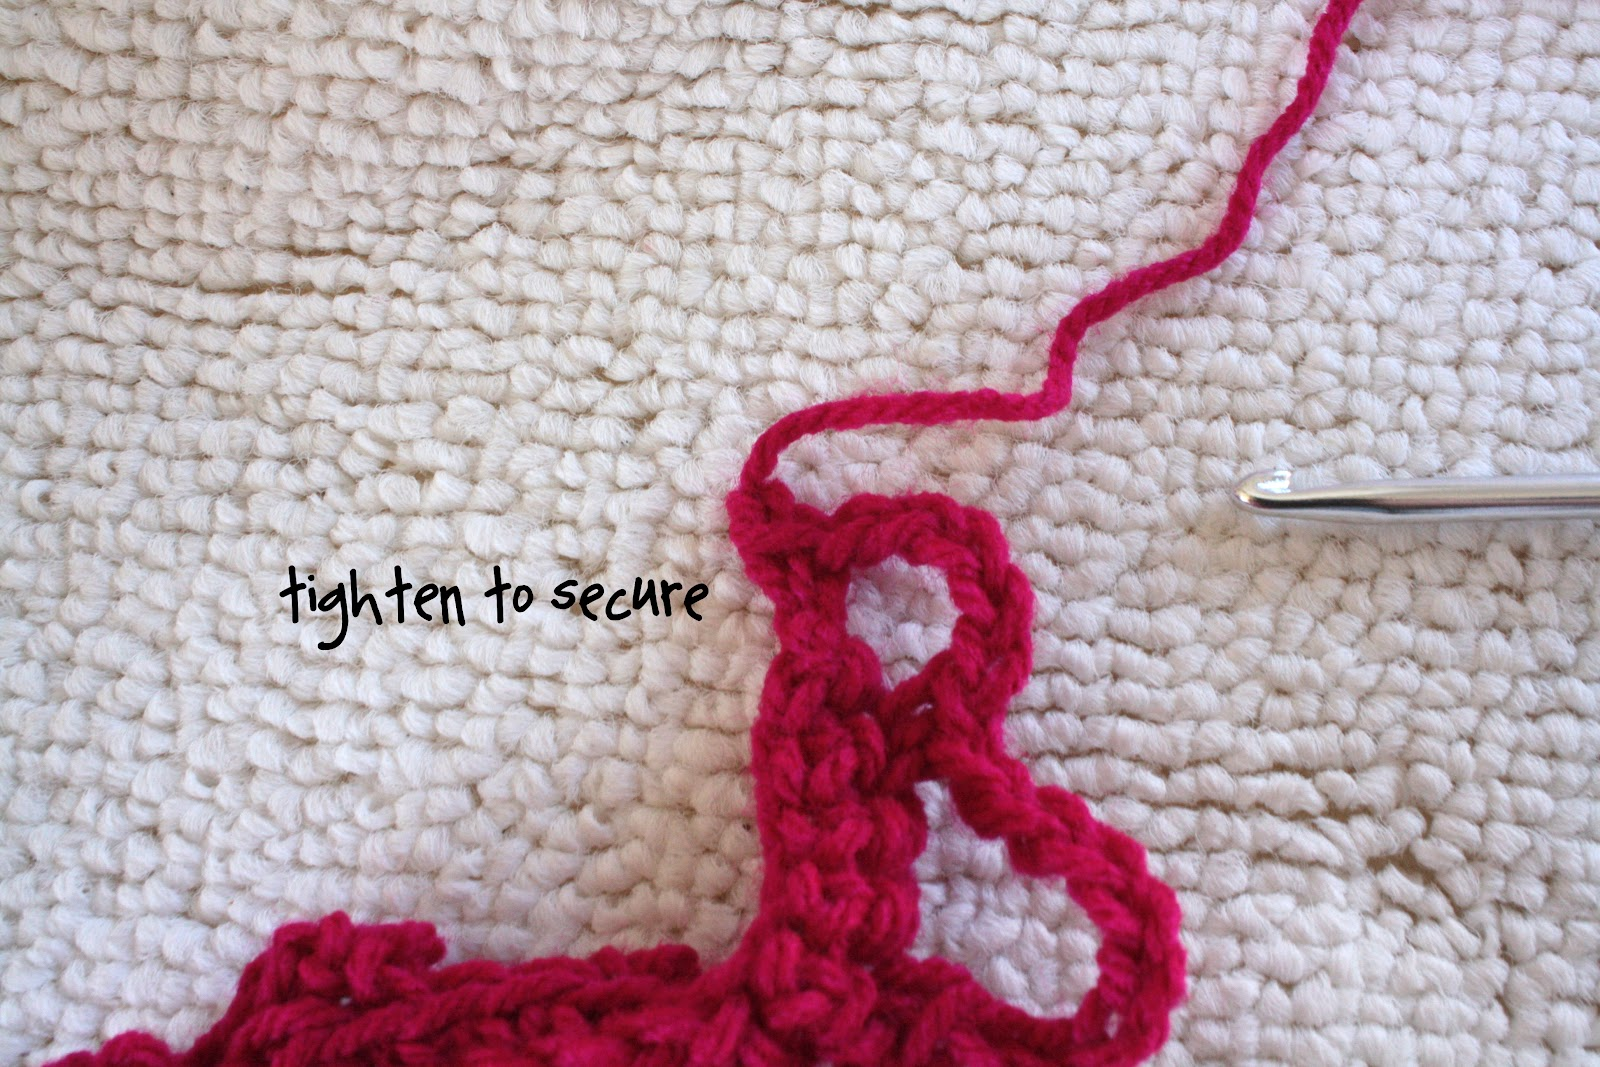 How To Crochet a Heart: {Crochet Basics} Slip Stitch and Fastening Off